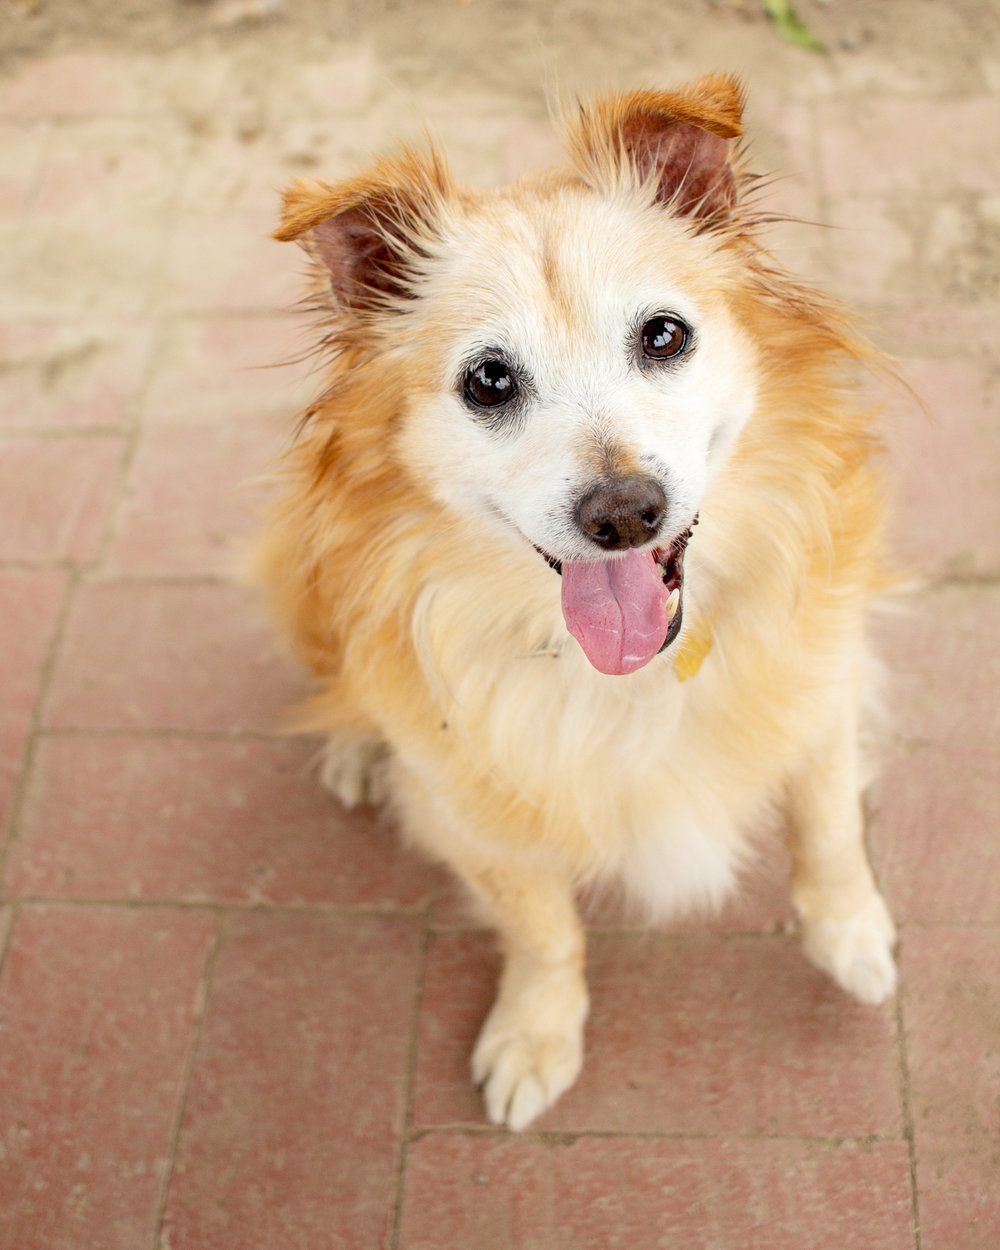 391-Orange-County-Dog-Photography-Steamer-Lee-Southern-California-SBACC.JPG